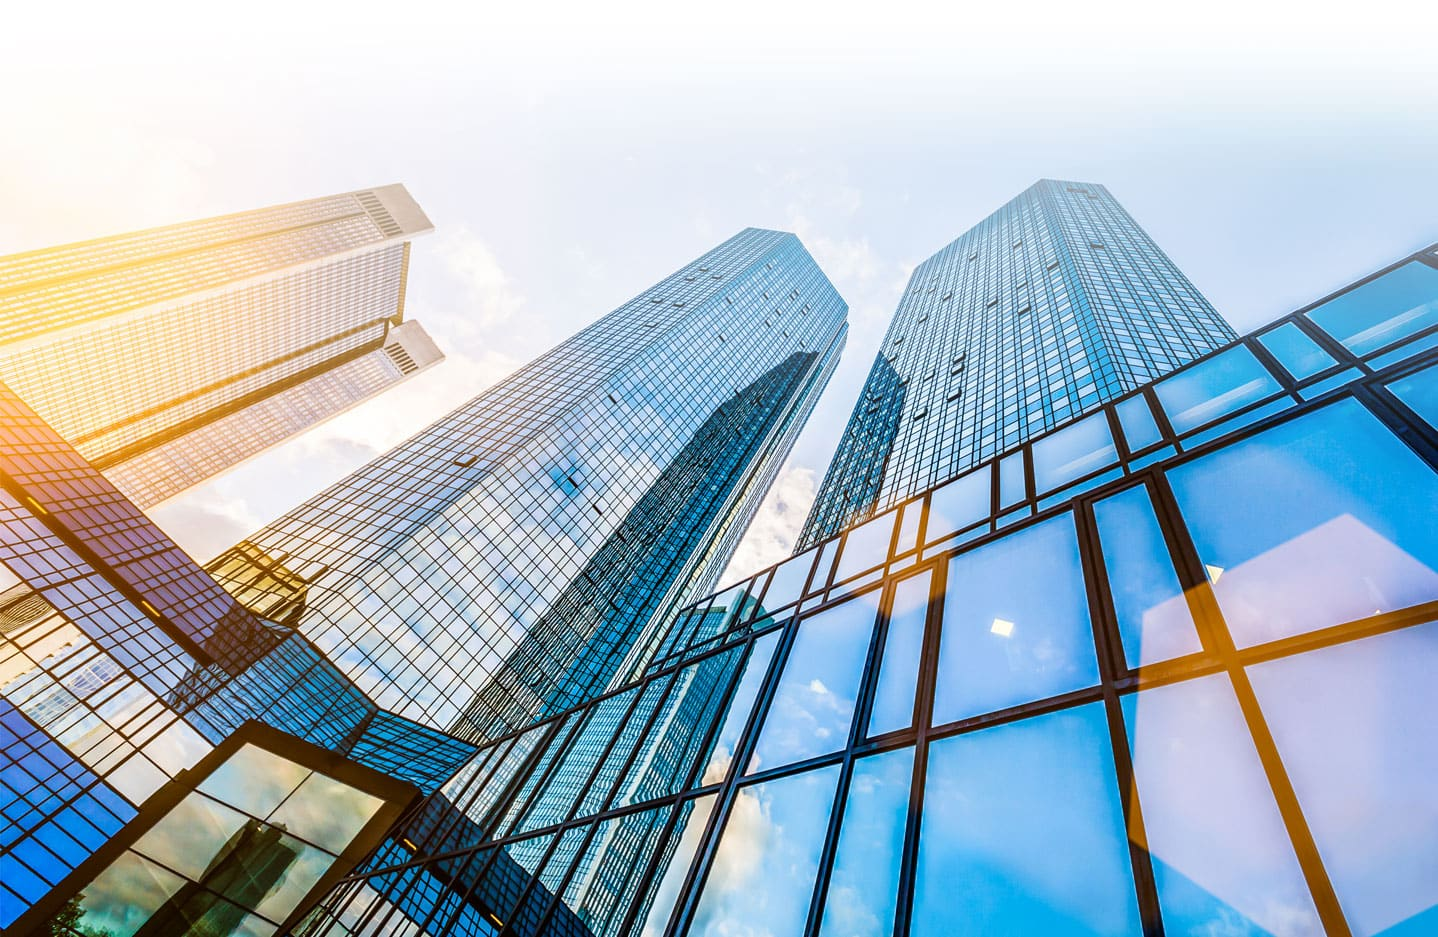 How do Building Management Systems contribute to Smart